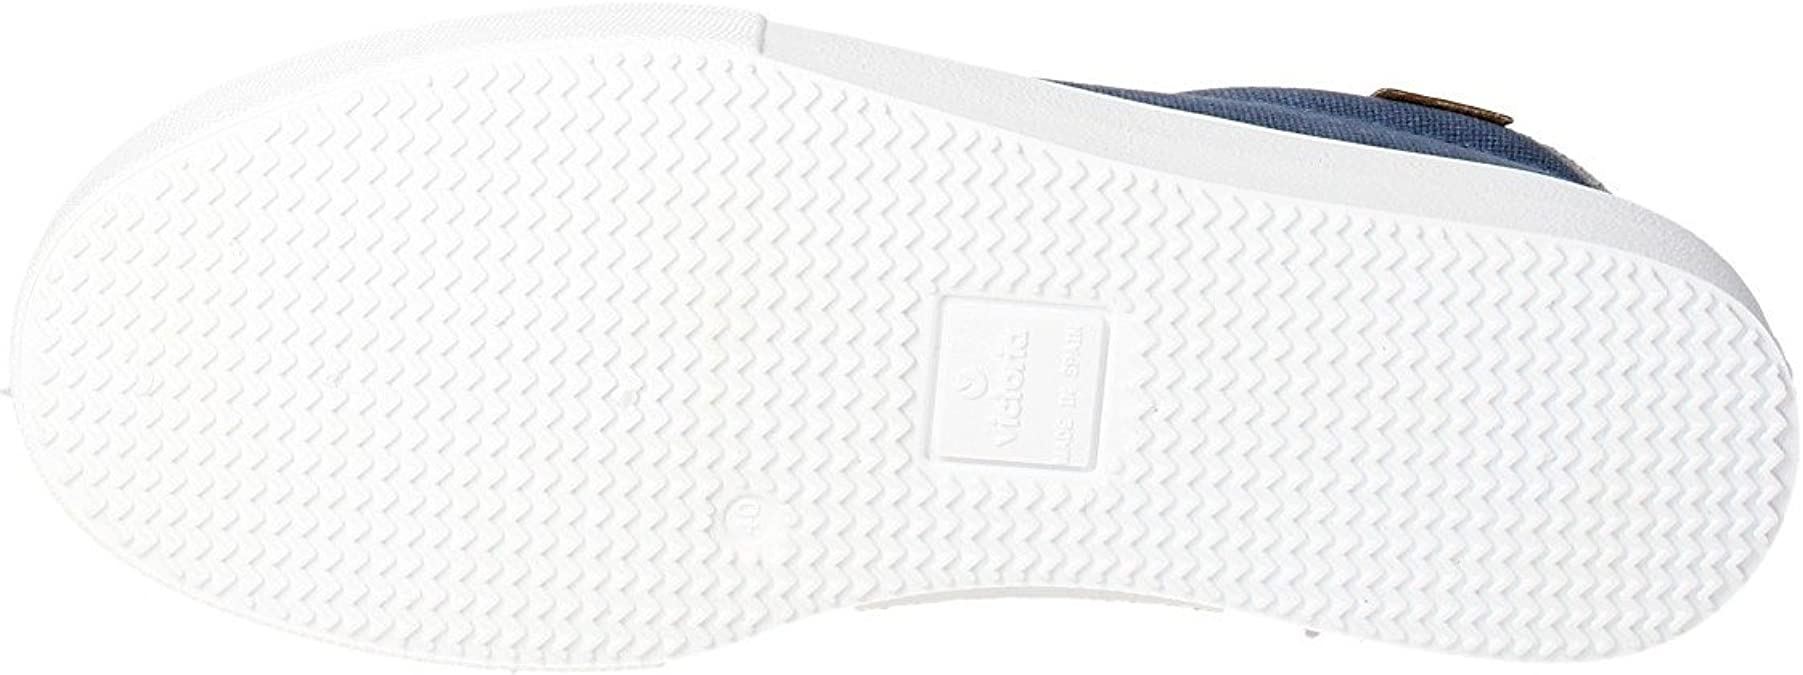 Victoria x250 a25006 Sneakers Homme Toile Jeans,: Amazon